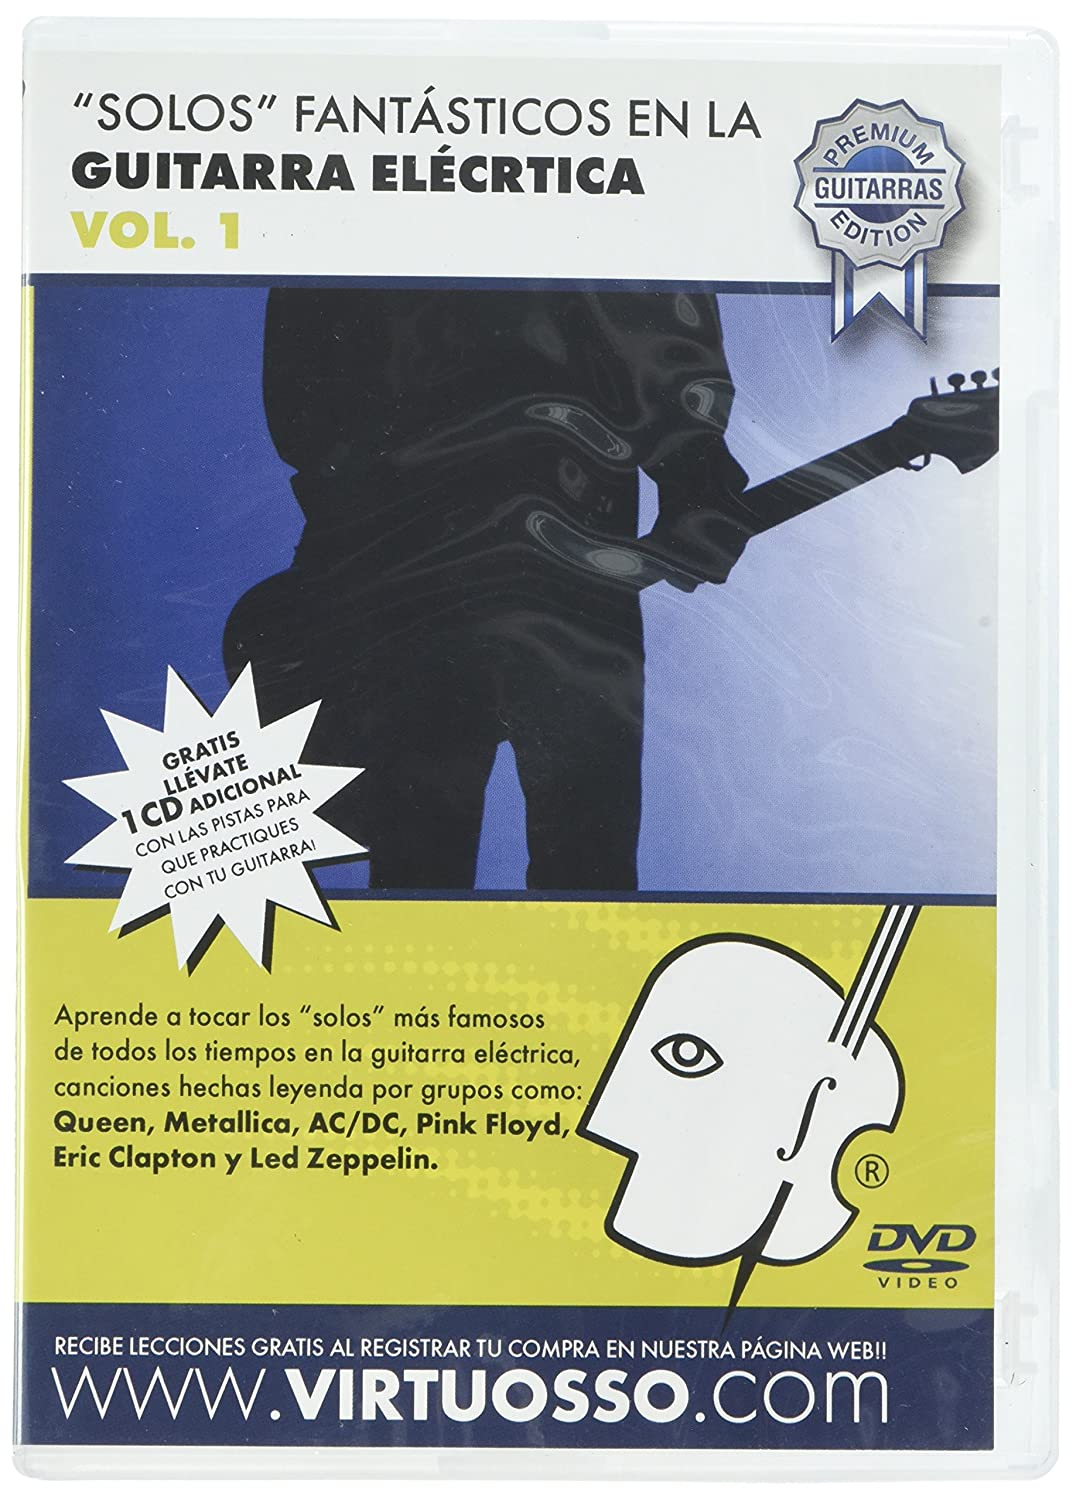 Amazon.com: Virtuosso Electric Guitar Riffs Vol.1 (Curso De Solos Fantásticos En La Guitarra Eléctrica Vol.1) SPANISH ONLY: Musical Instruments